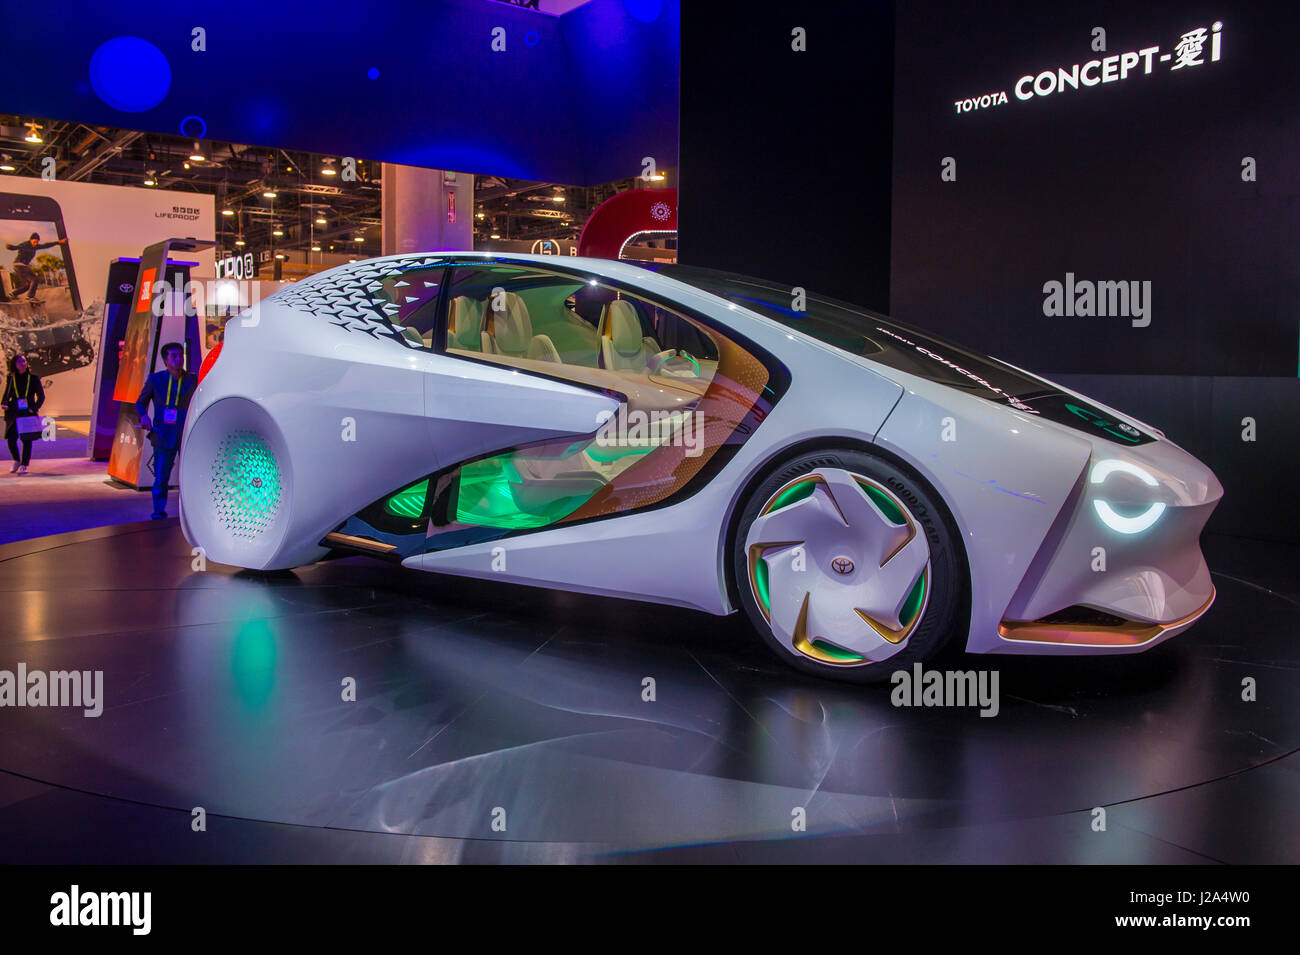 Toyota Concept car at the CES Show in Las Vegas - Stock Image